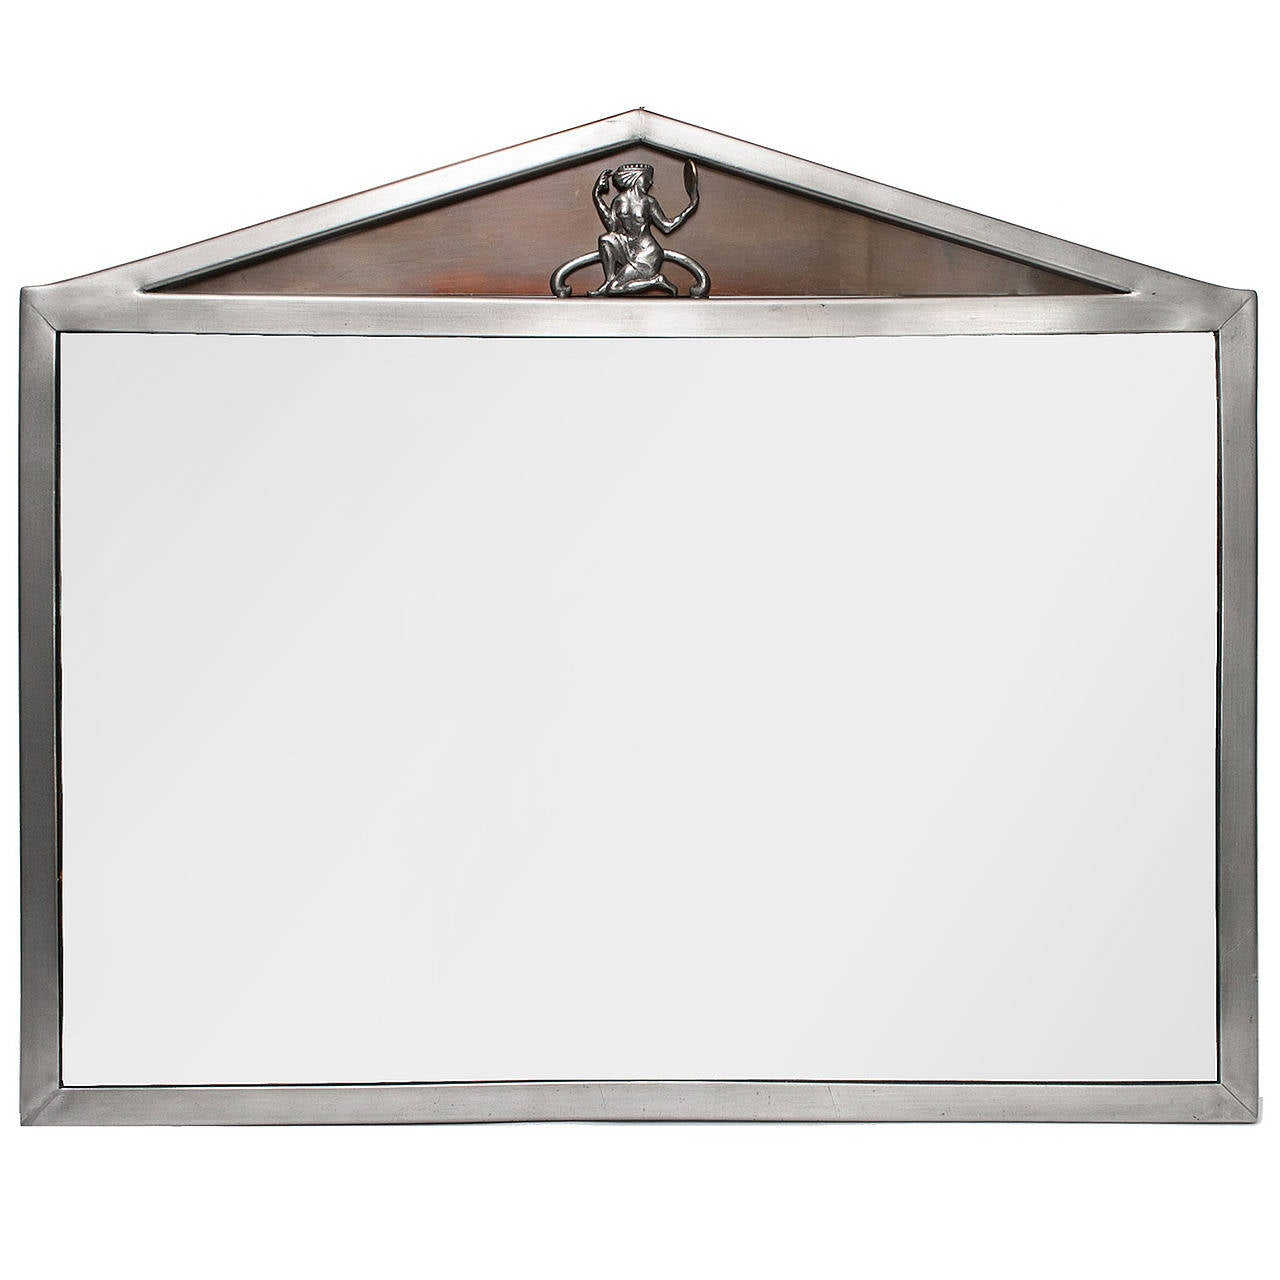 Scandinavian Modern Polished Pewter Mirror with Pediment Top